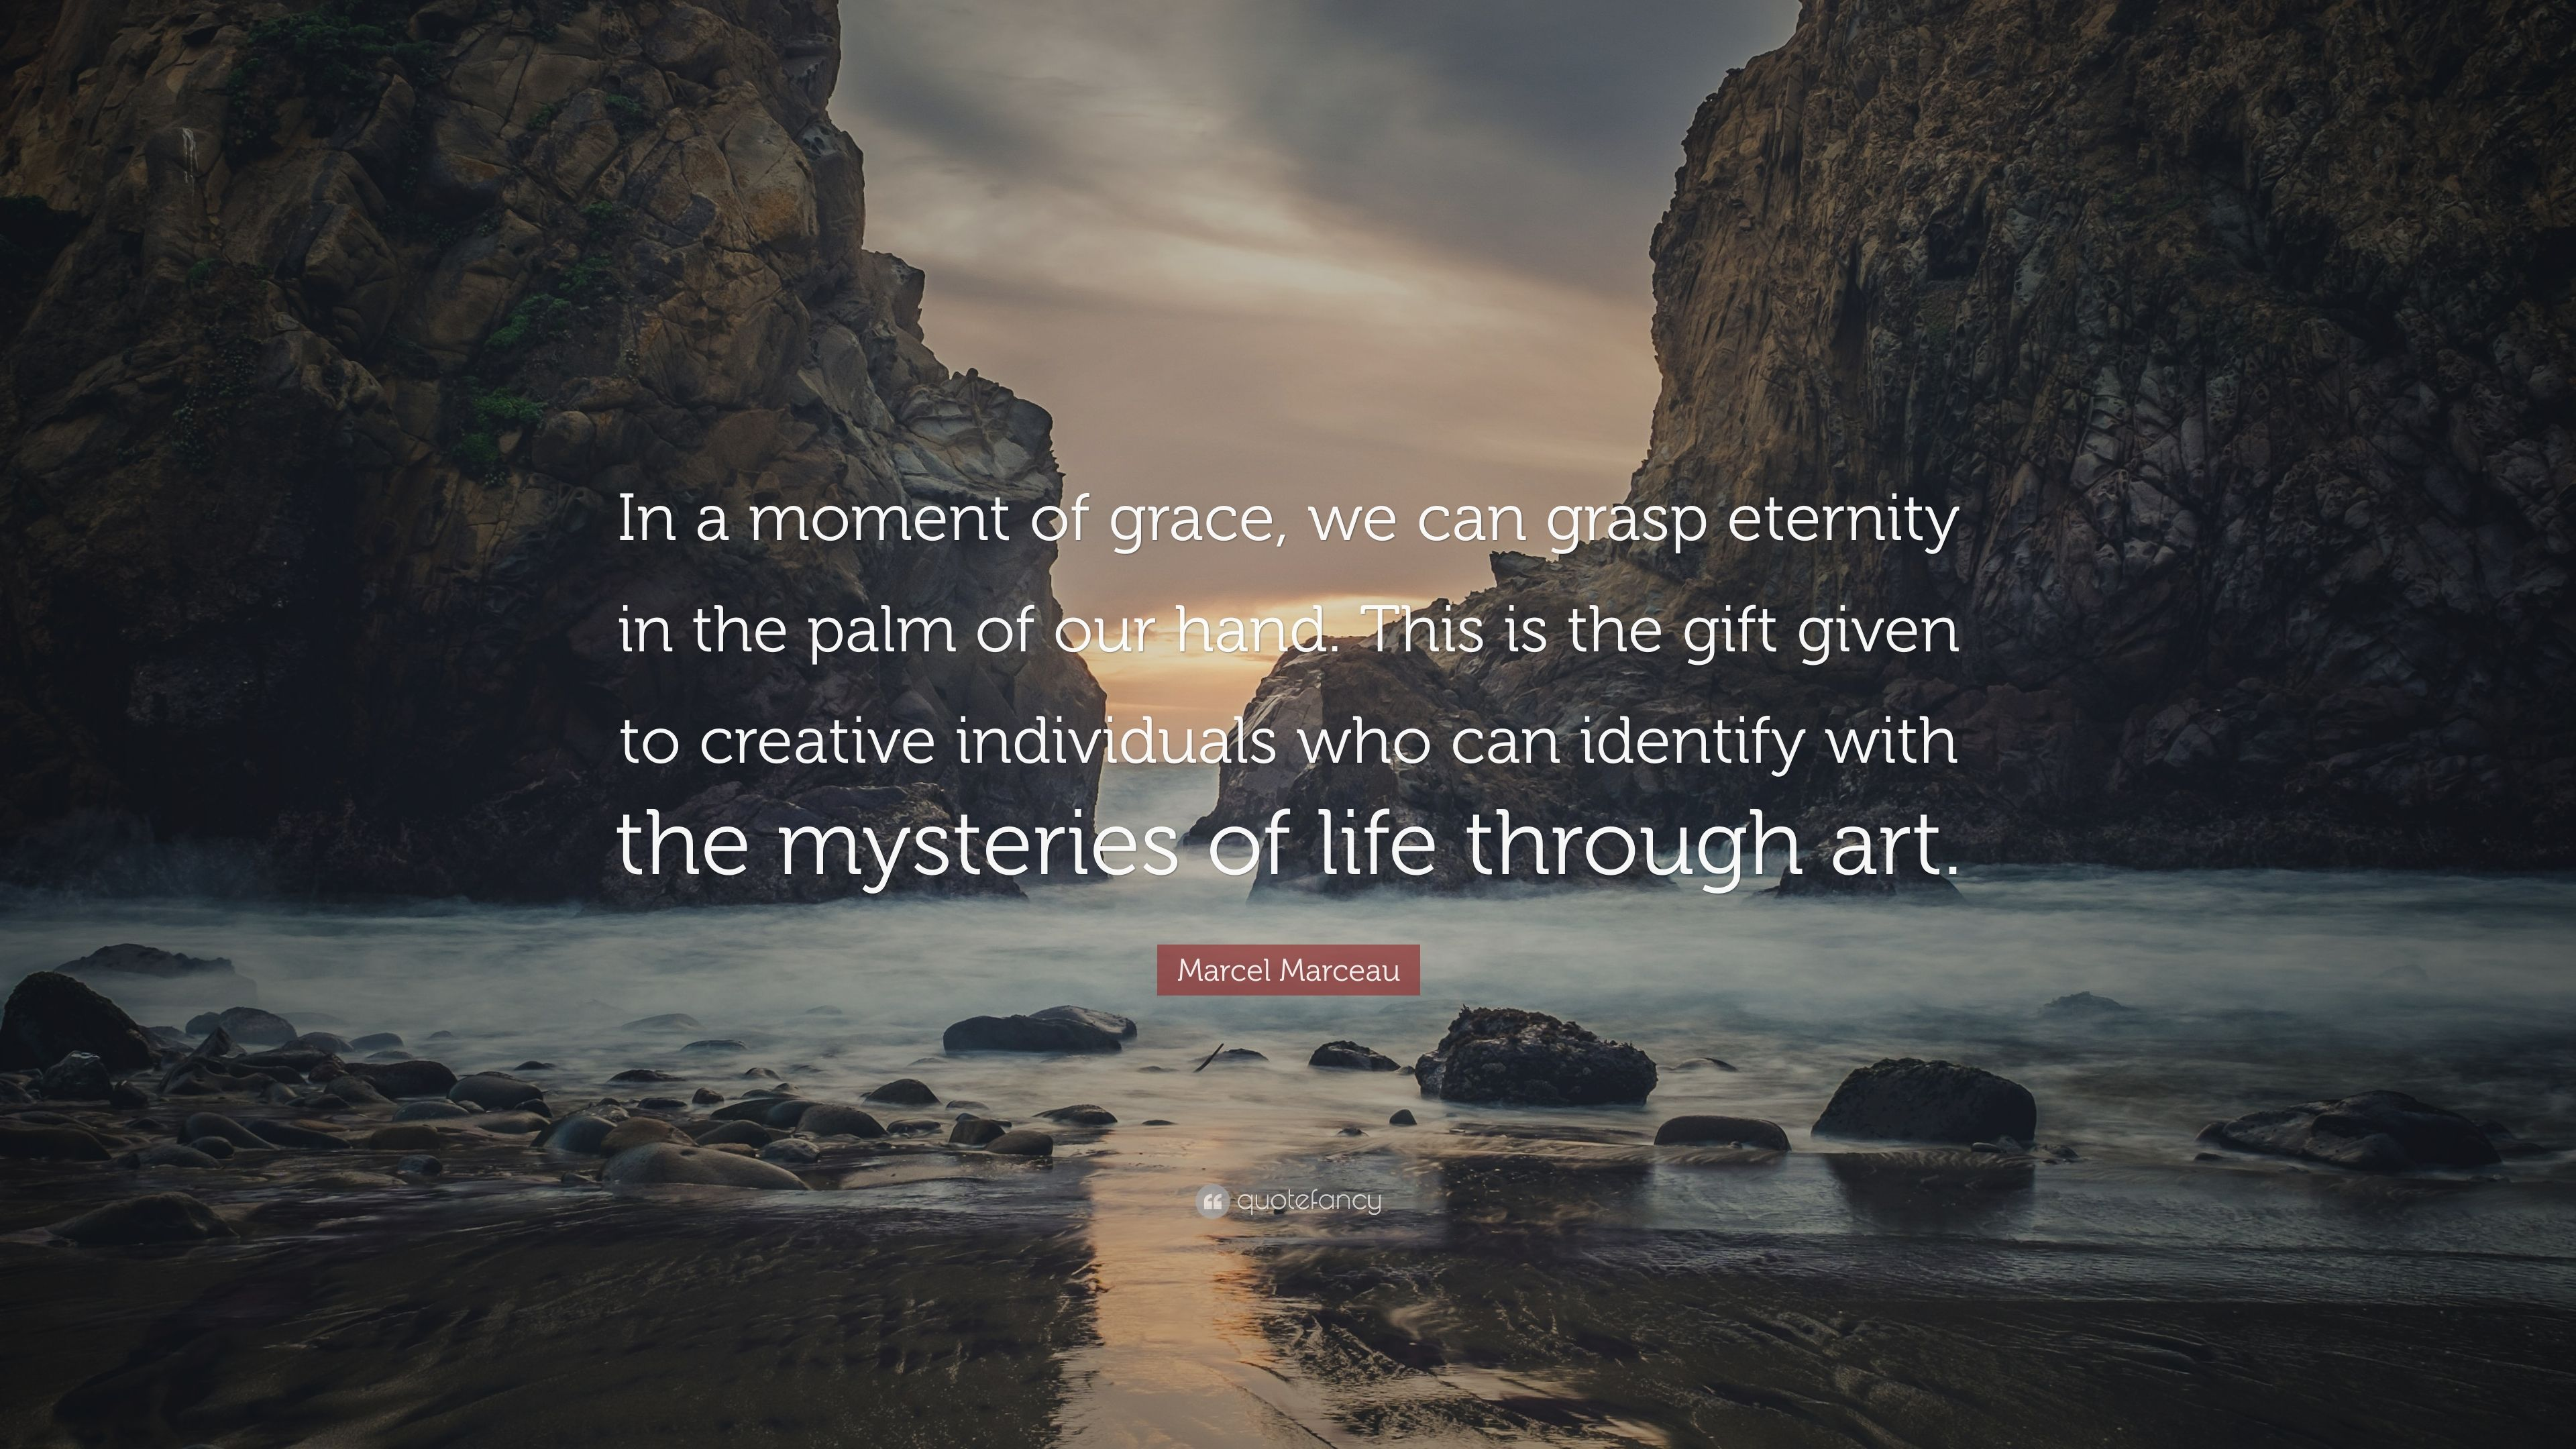 Moment Of Grace >> Marcel Marceau Quote In A Moment Of Grace We Can Grasp Eternity